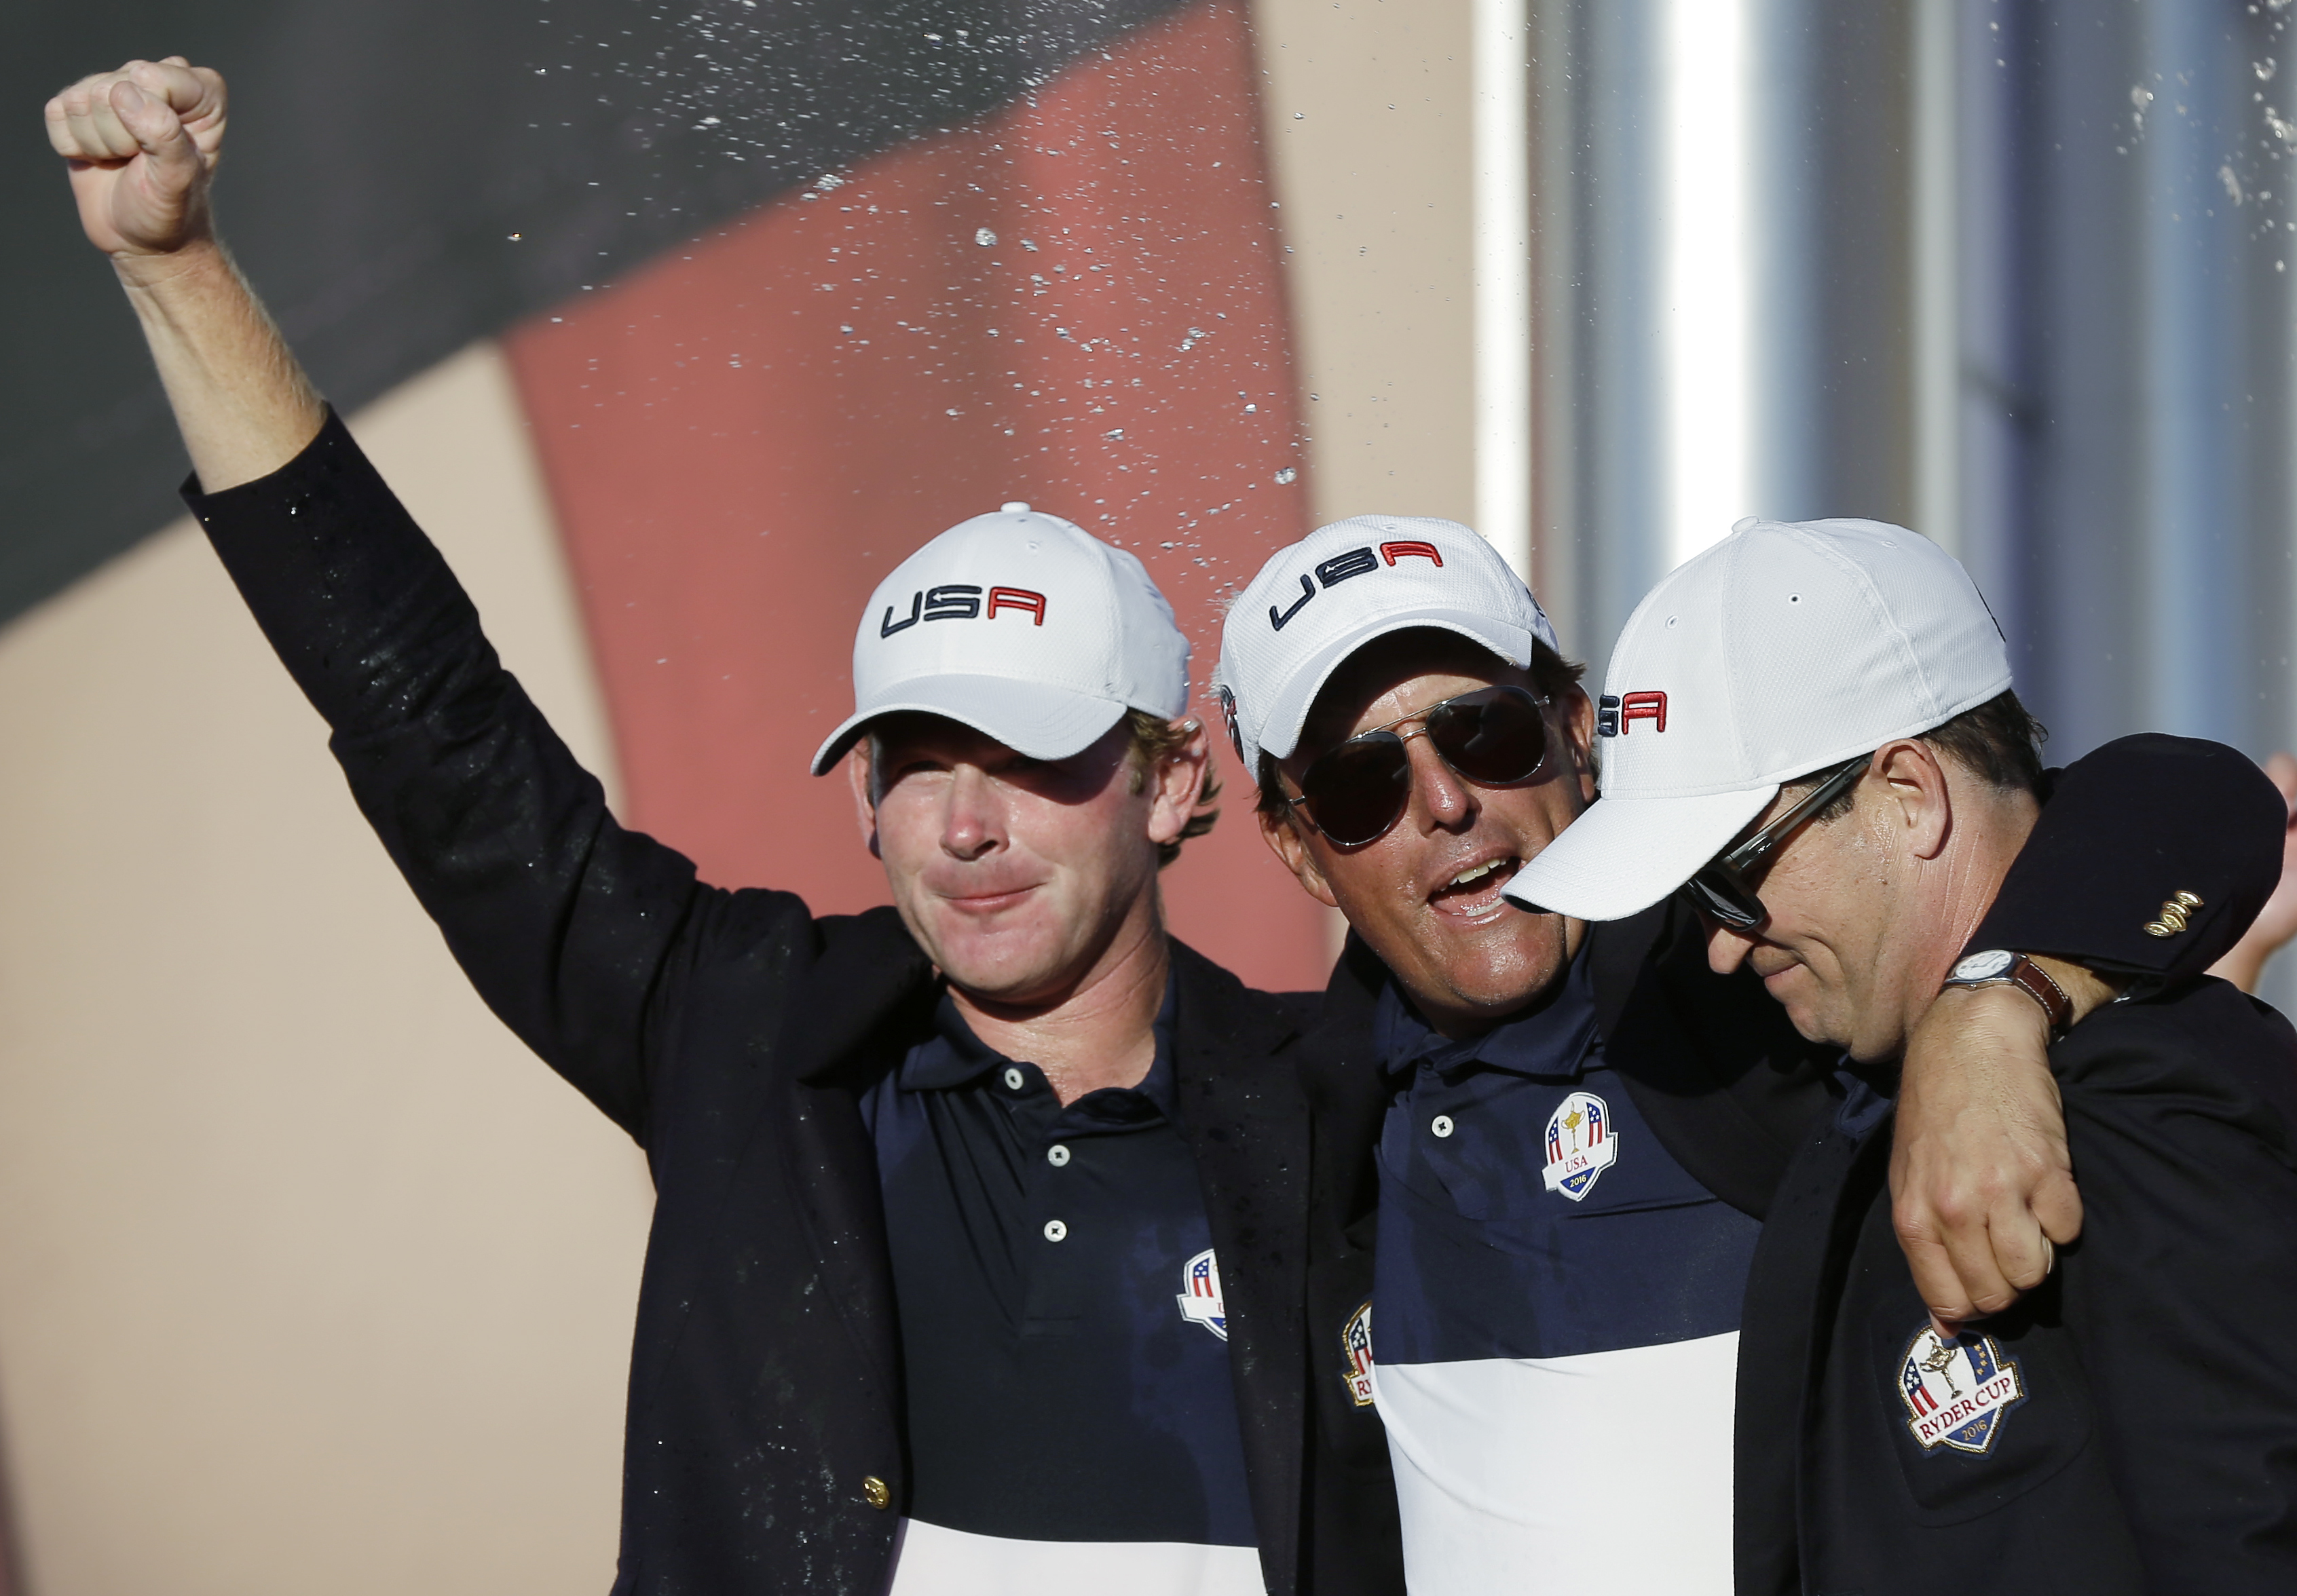 United States Brandt Snedeker, United States Phil Mickelson and United States Dustin Johnson celebrate during the closing ceremony of the Ryder Cup golf tournament Sunday, Oct. 2, 2016, at Hazeltine National Golf Club in Chaska, Minn. (AP Photo/David J. P